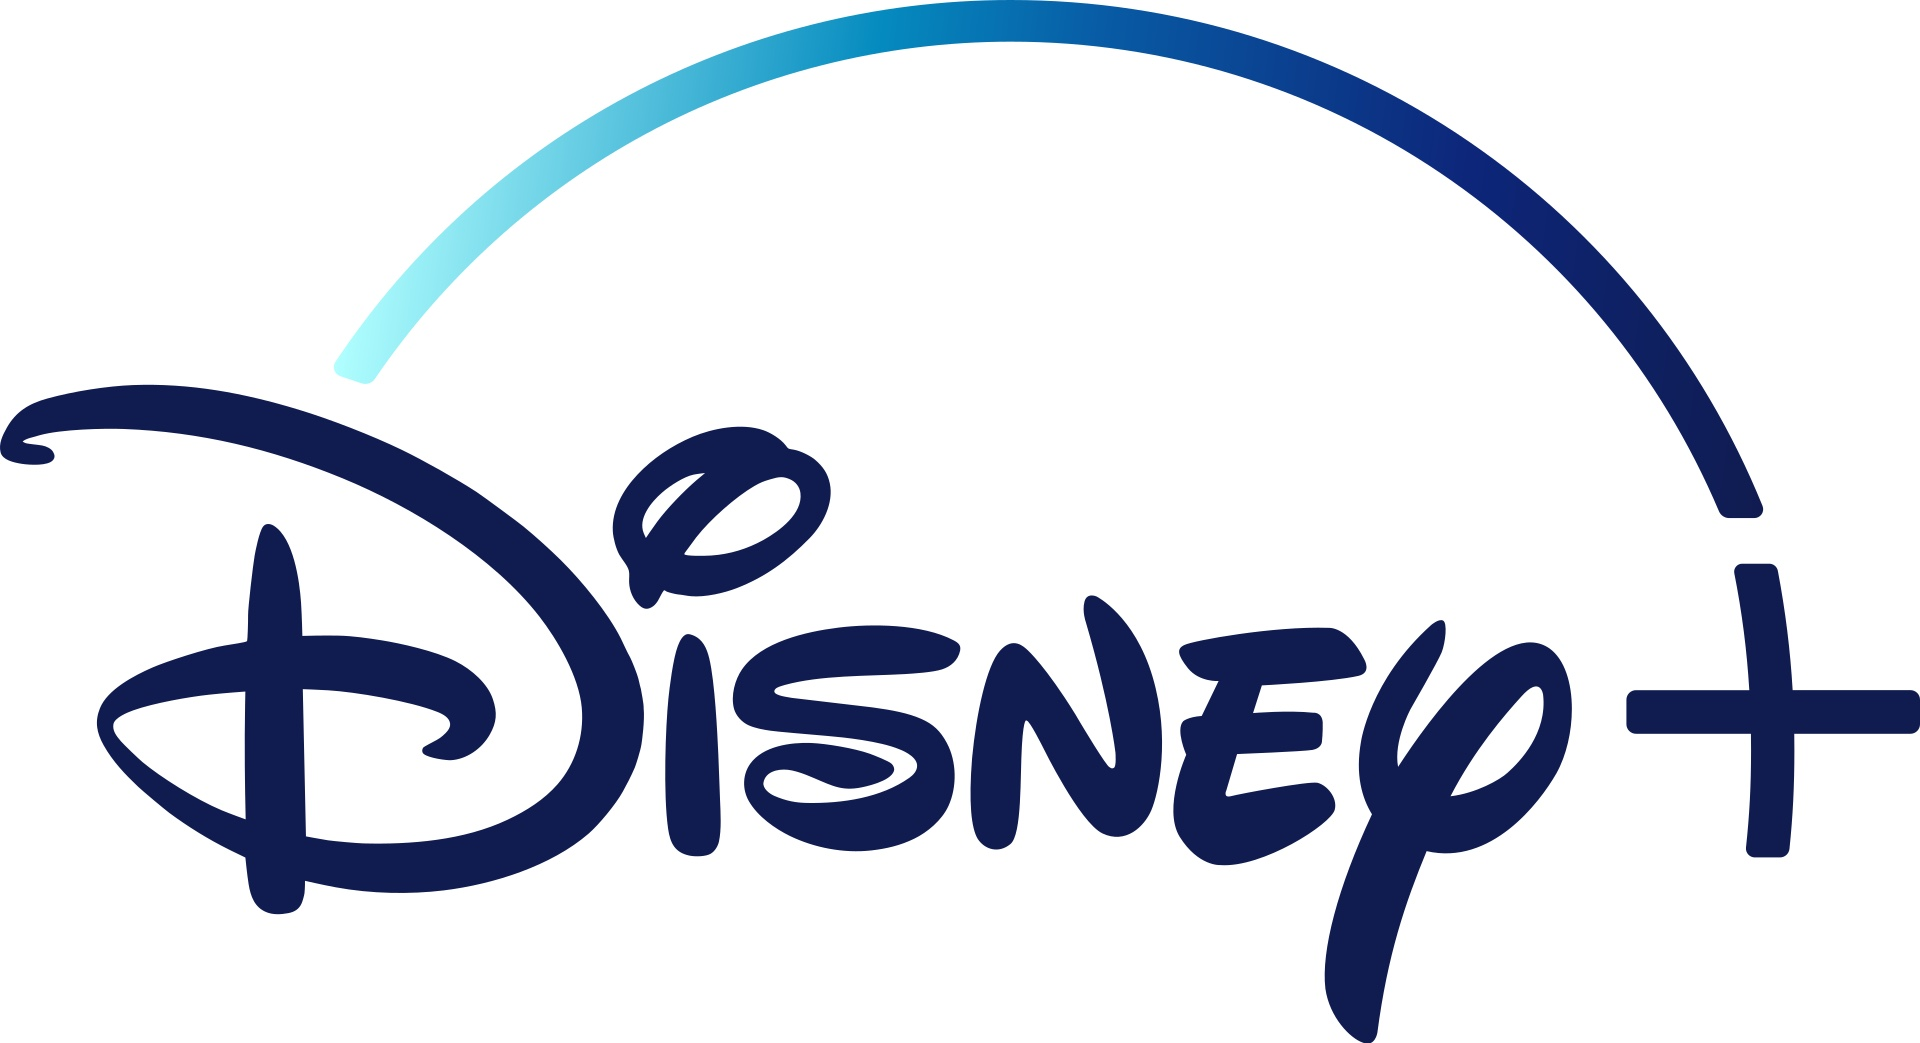 Save over 20% on your annual (69.99 €) or monthly (6.99 €) Disney + subscription before February 23.